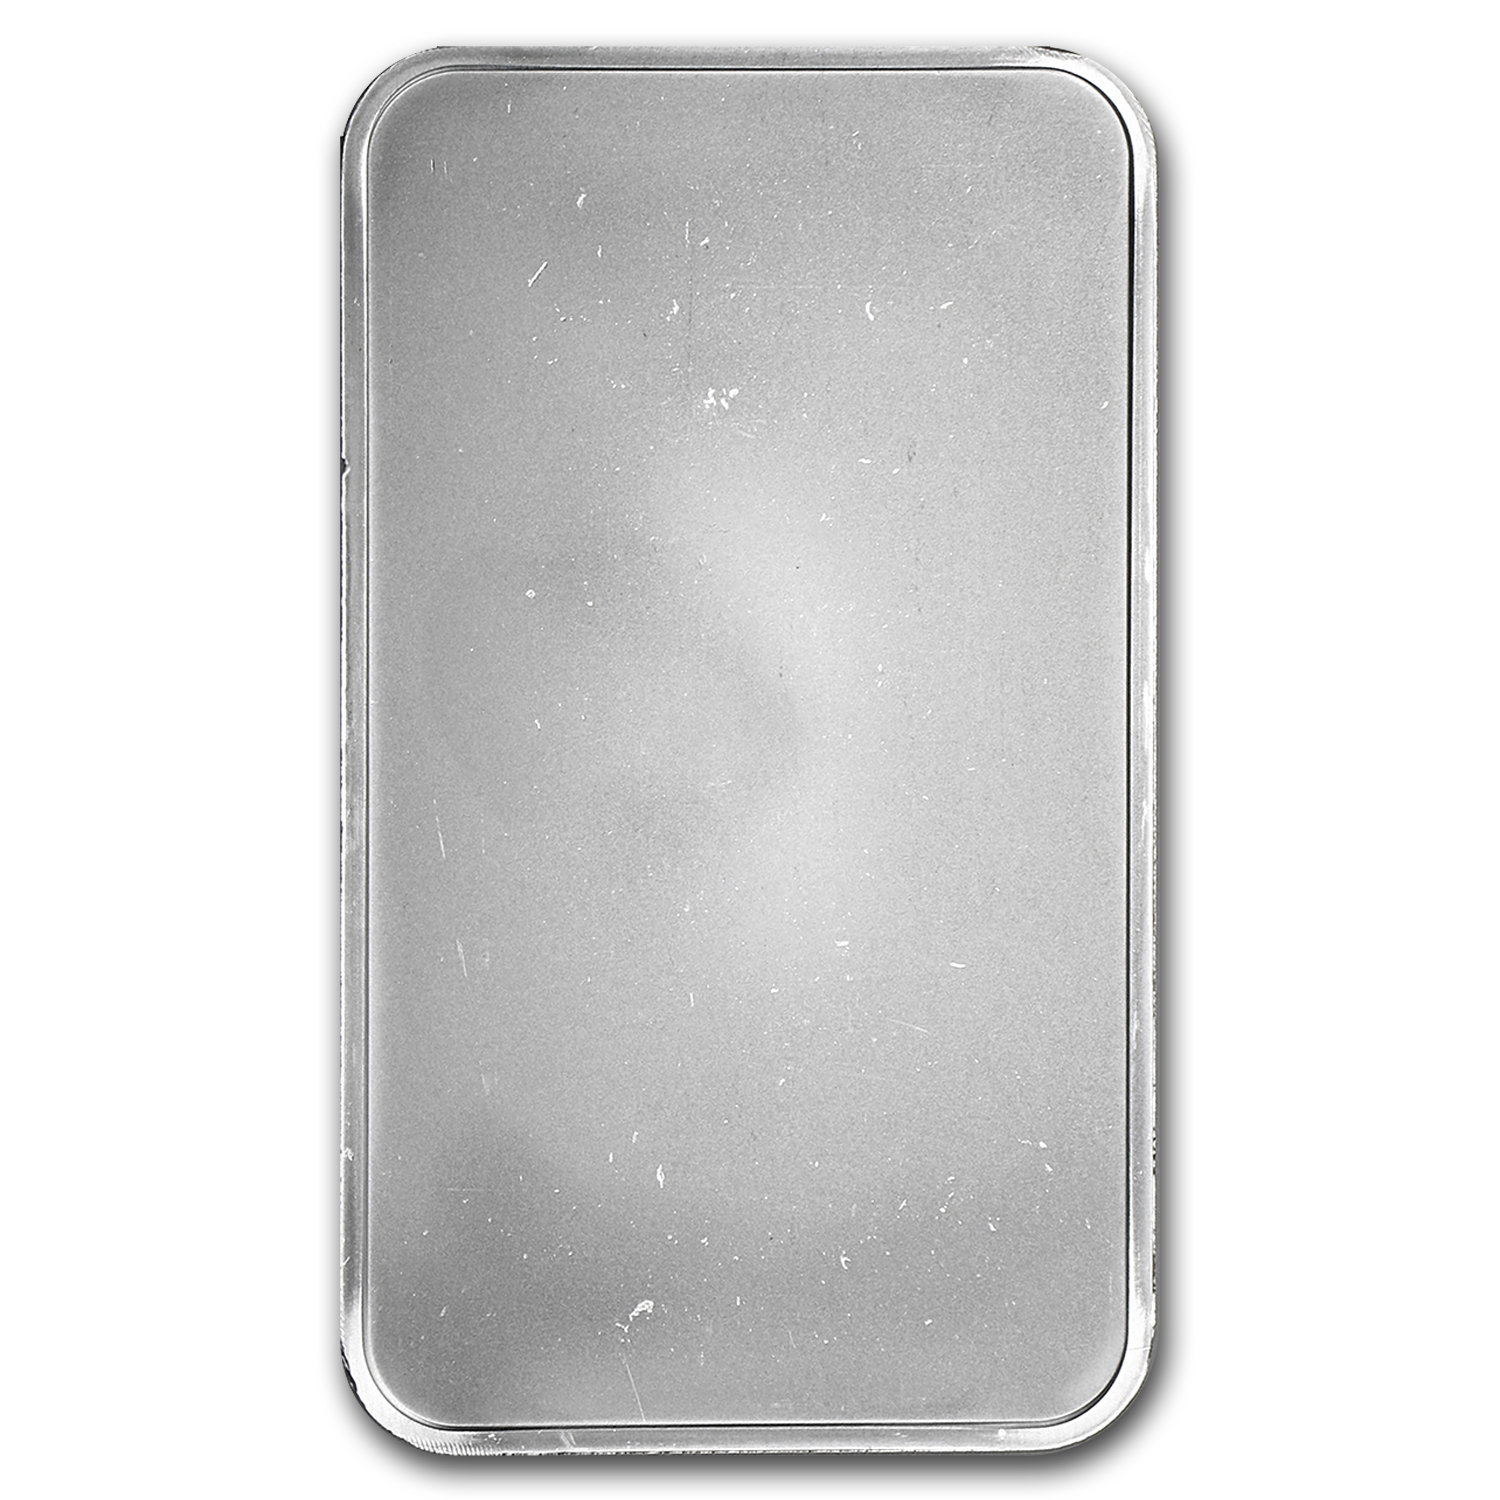 2015 100 gram Silver Cook Islands Bounty Coin Bar (.9999 Fine)